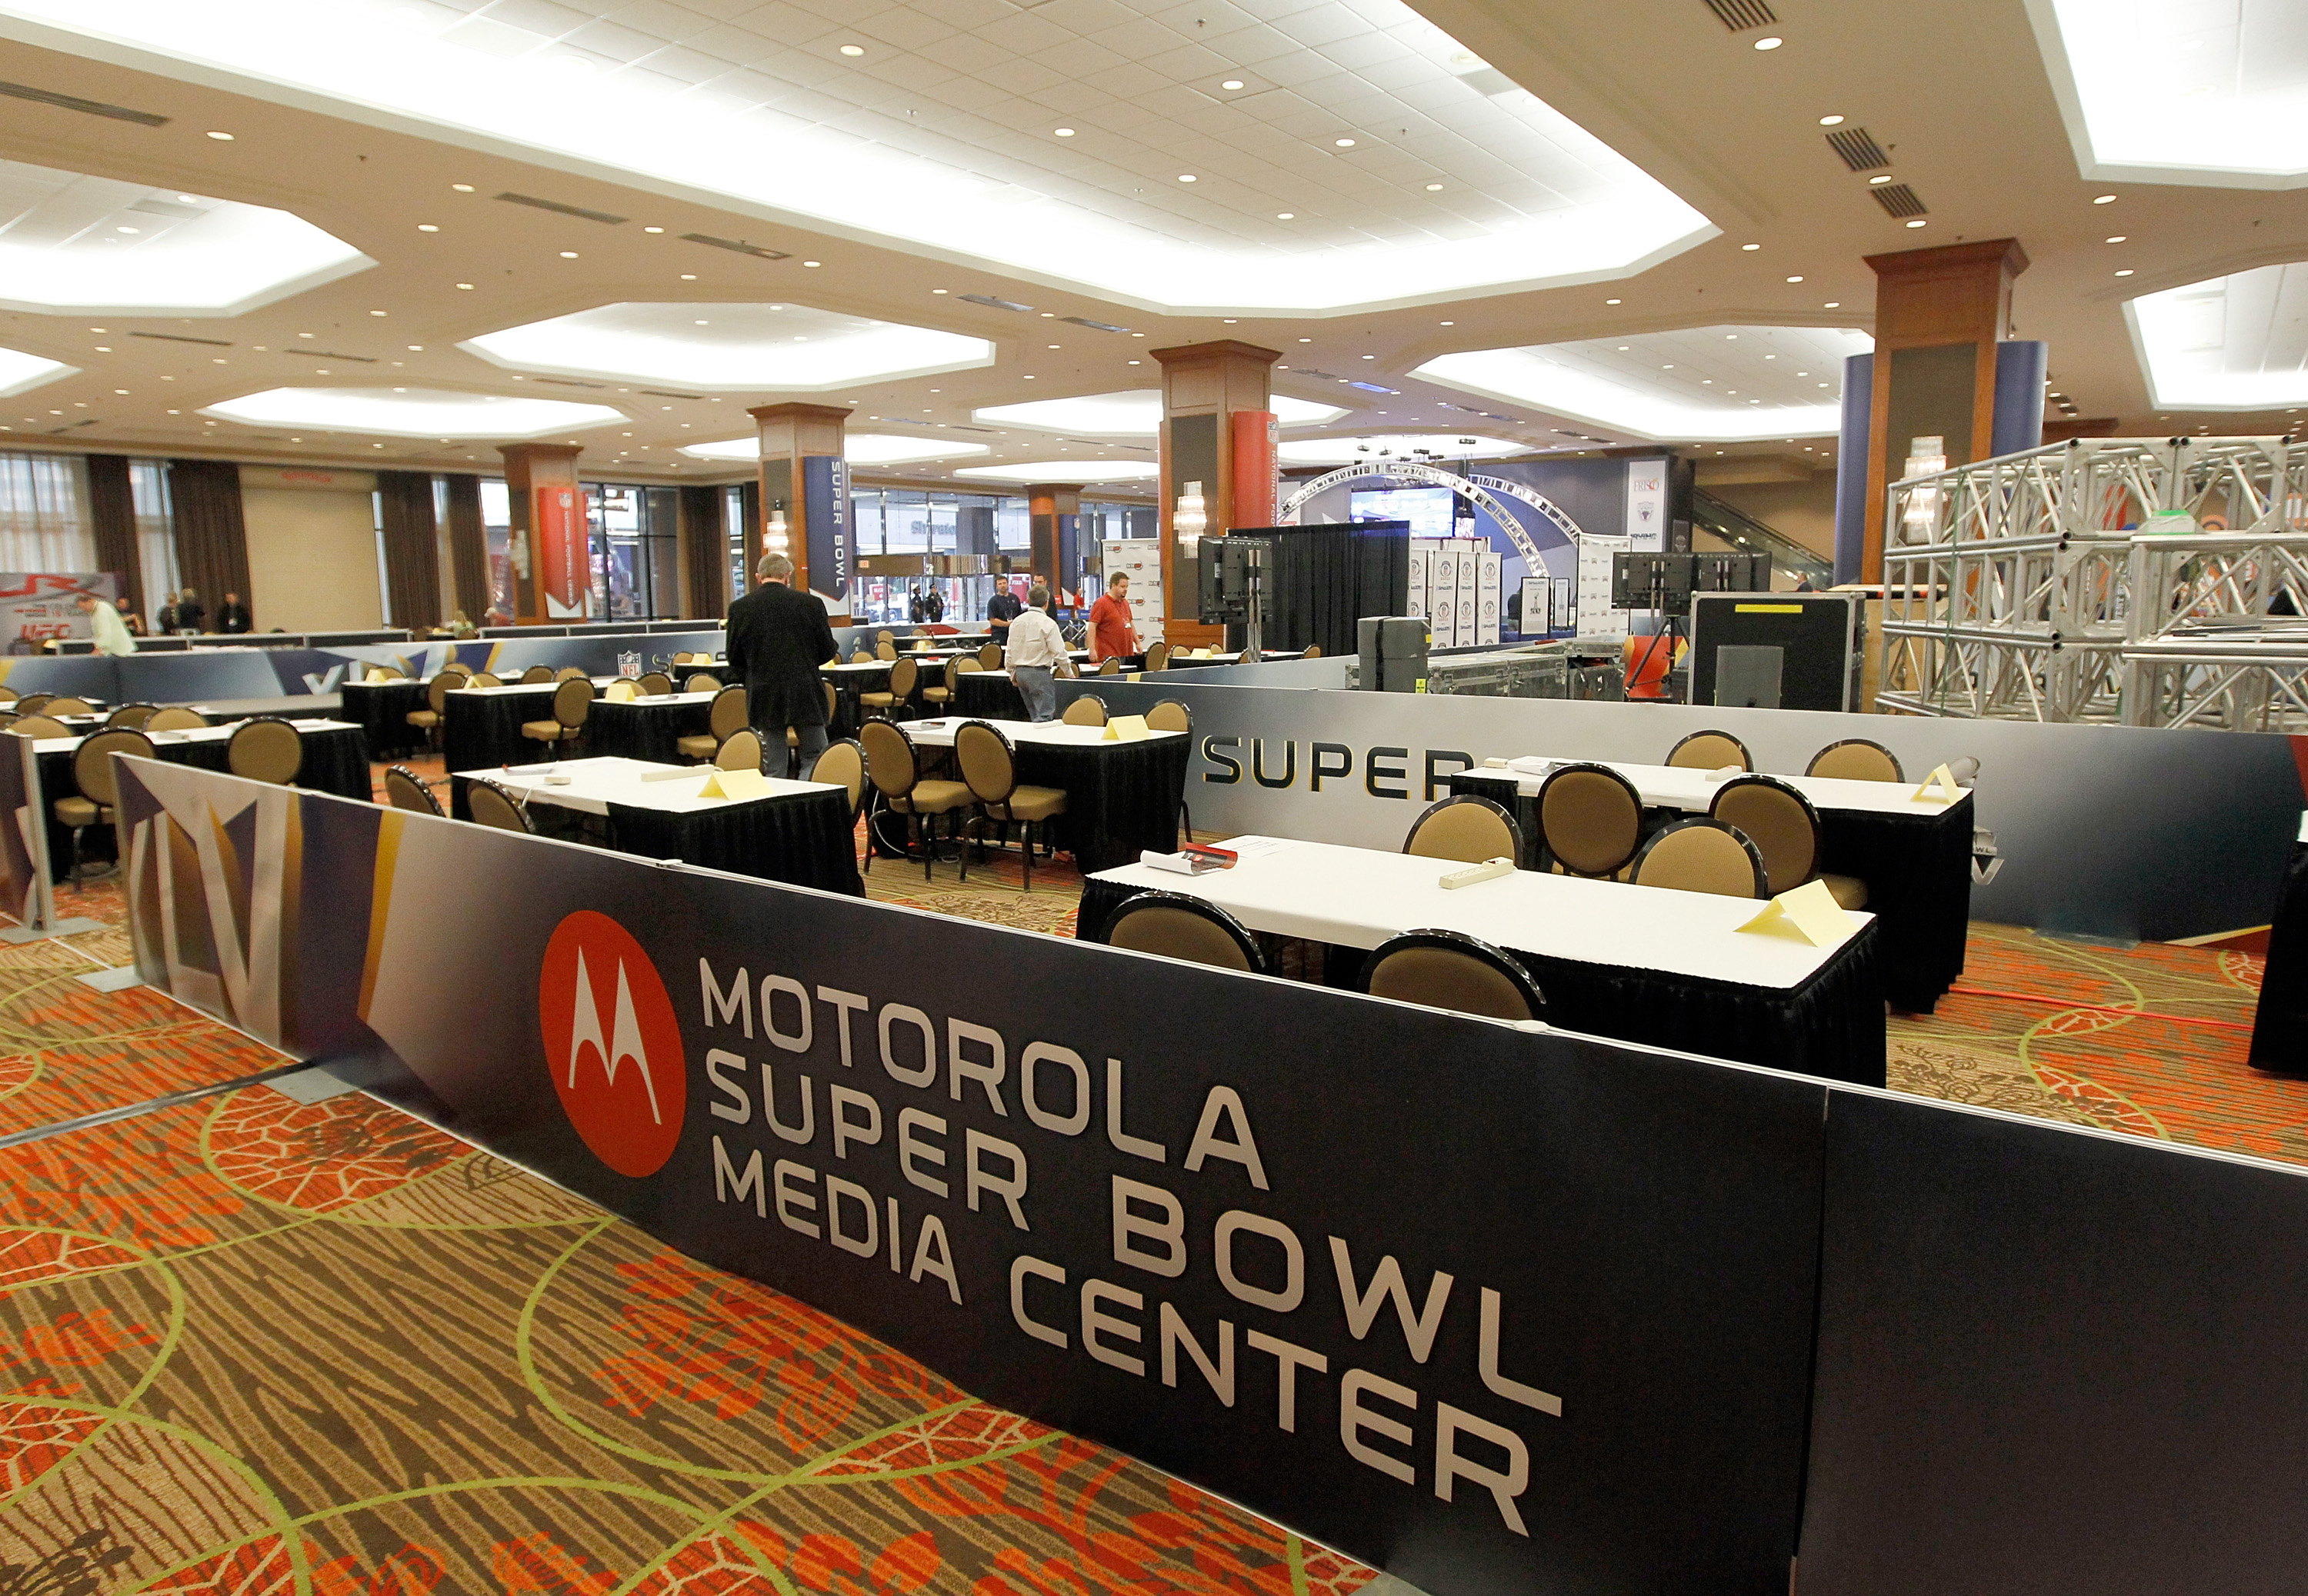 DALLAS, TX - JANUARY 30:  Members of the working media arrive for the opening day of the Motorola Super Bowl XLV Media Center on January 30, 2011 in Dallas, Texas.  Cowboys Stadium will host Super Bowl XLV on February 6, 2011 between the Pittsburgh Steele